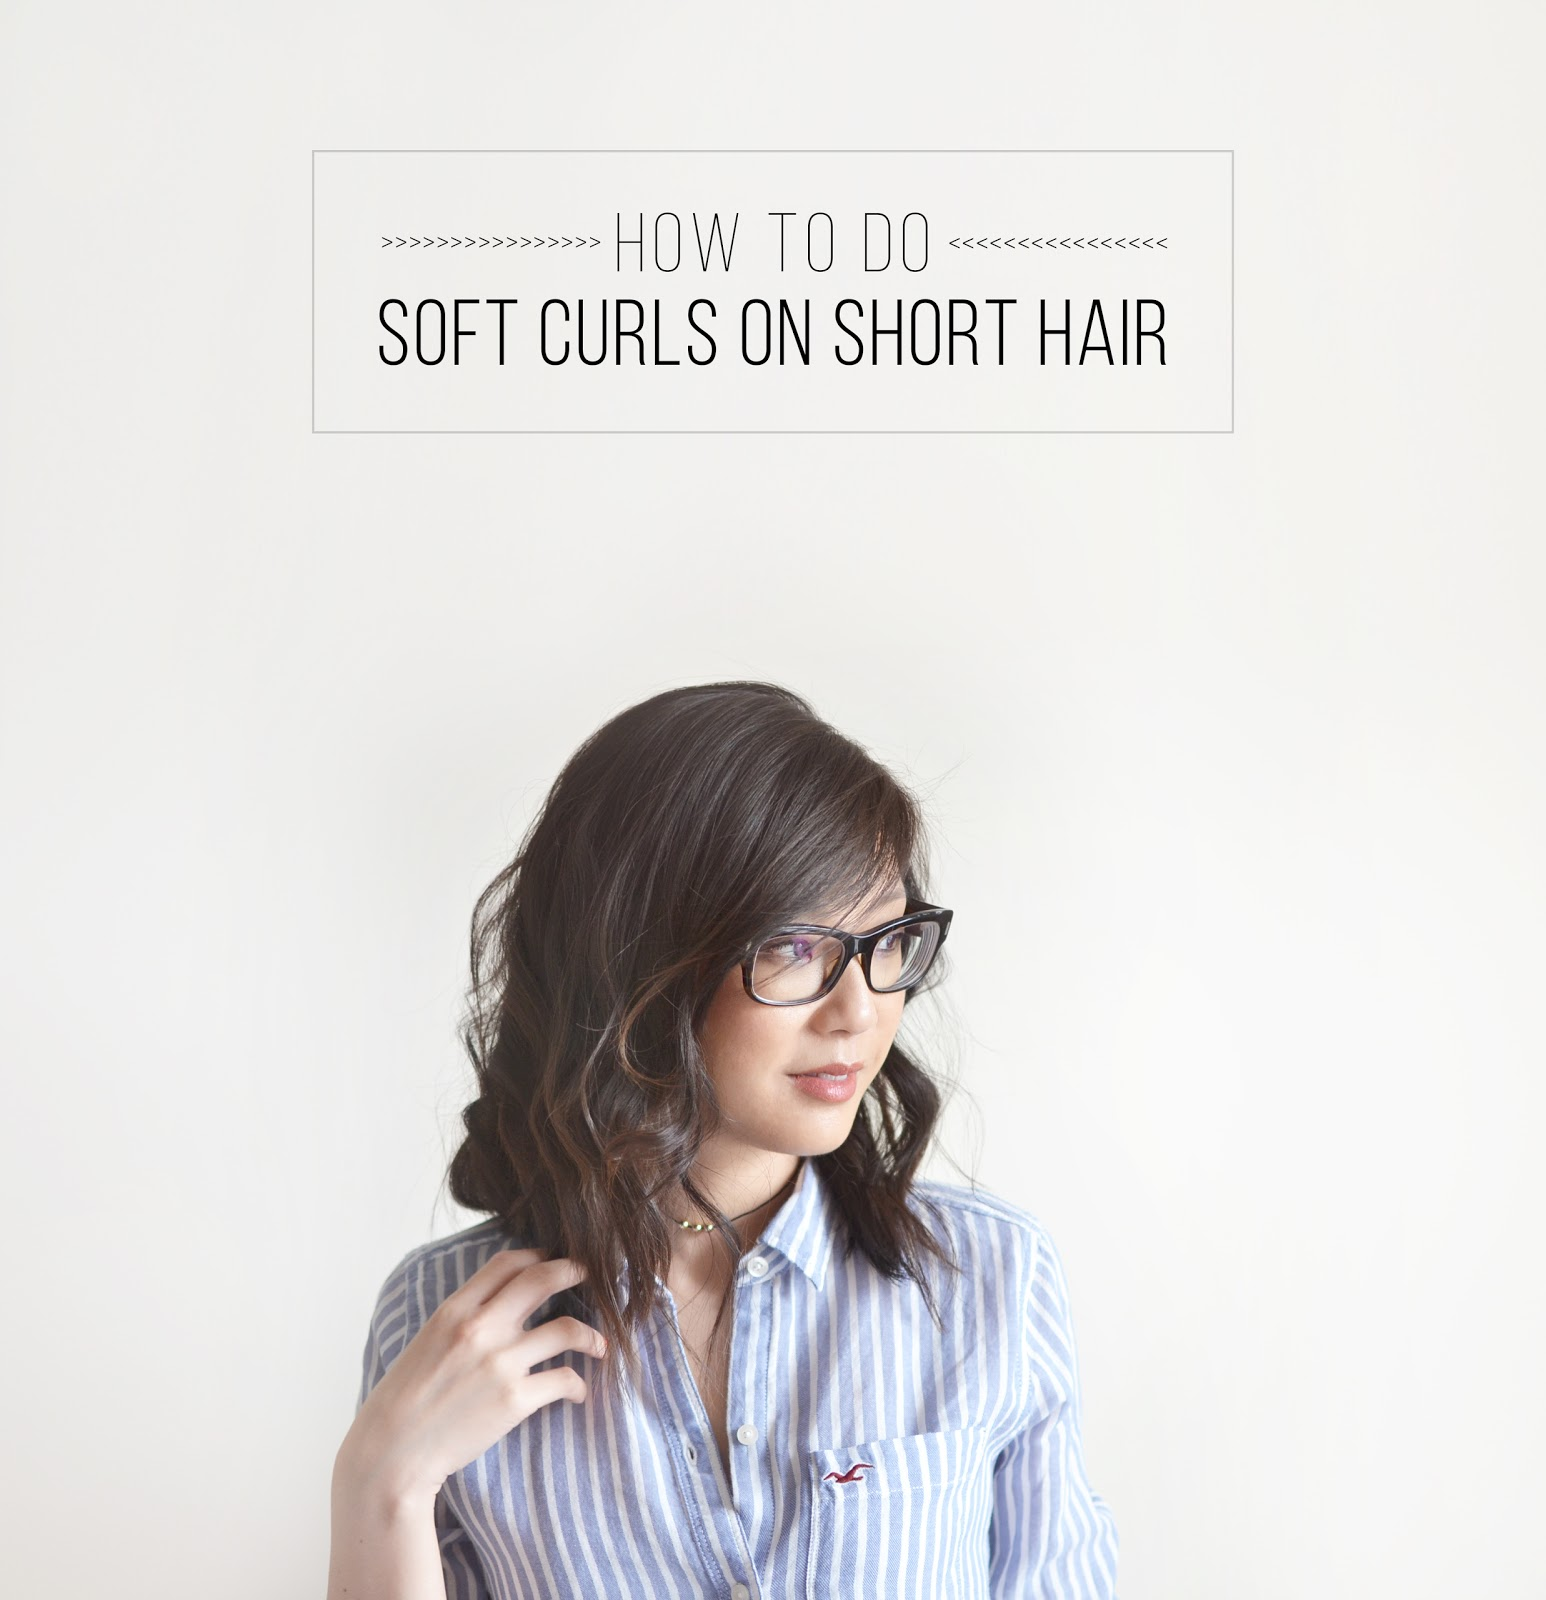 How To Do Soft Curls On Short Hair